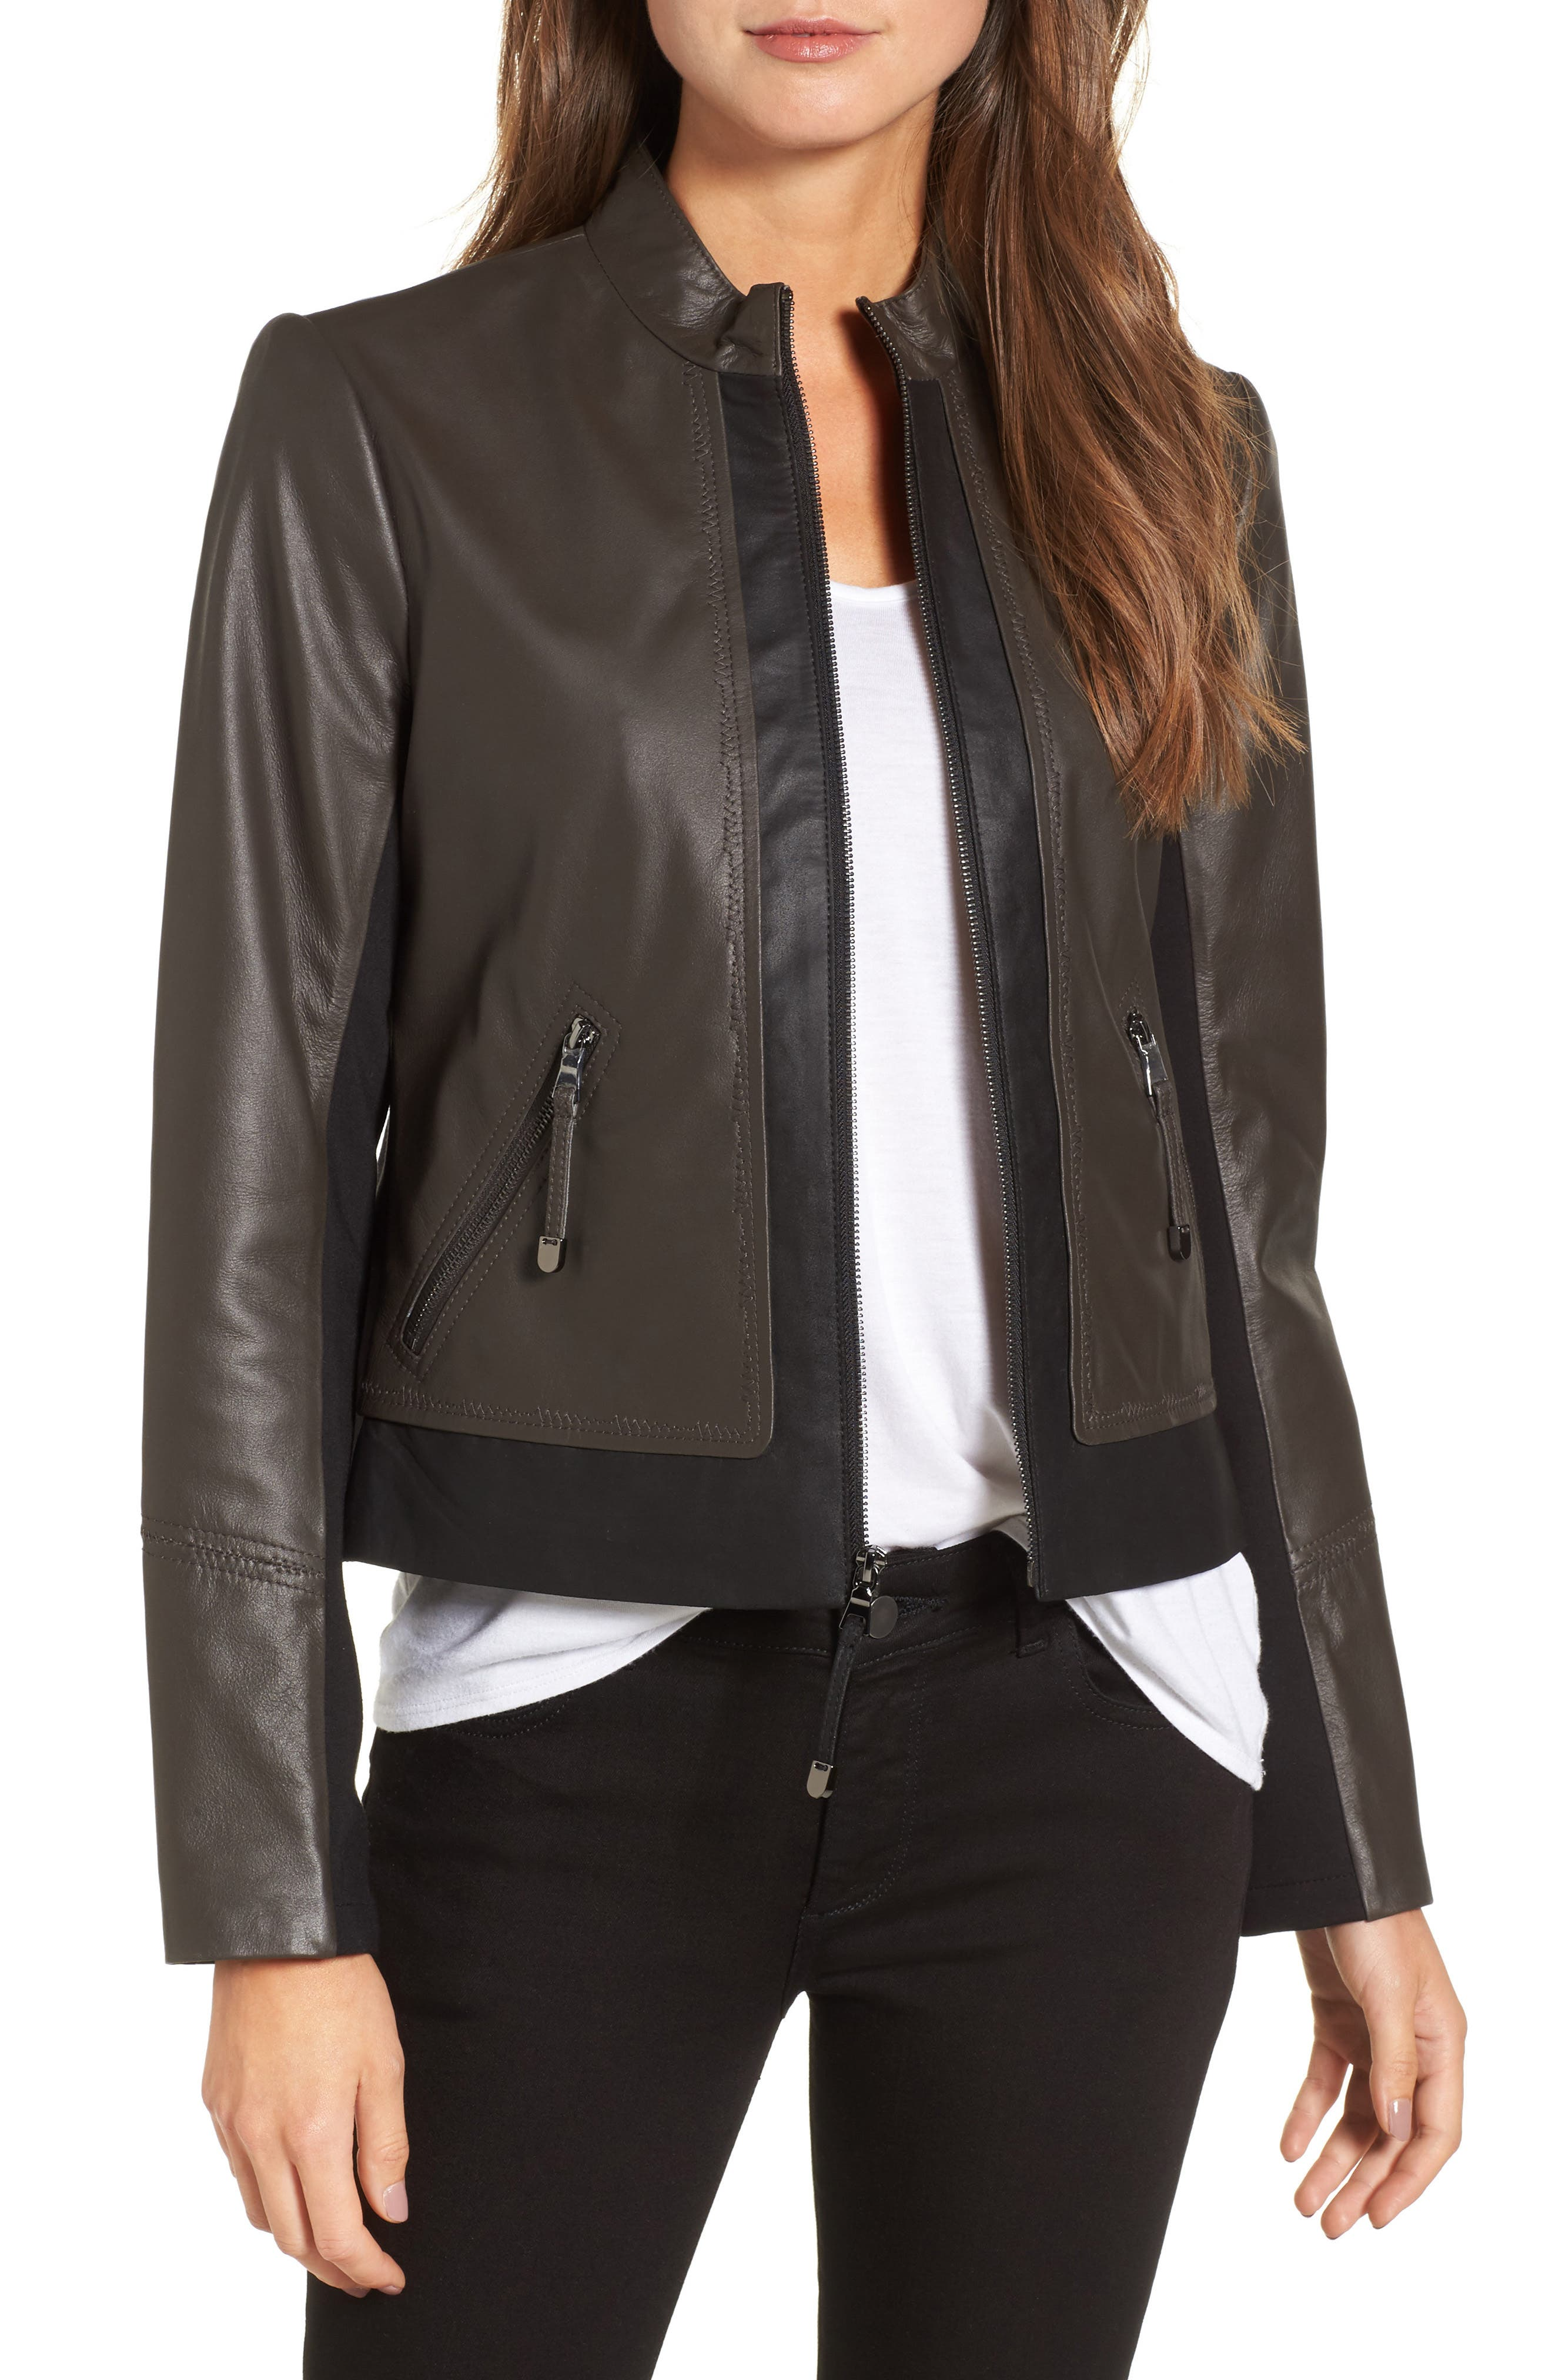 Via Spiga Colorblock Leather Jacket